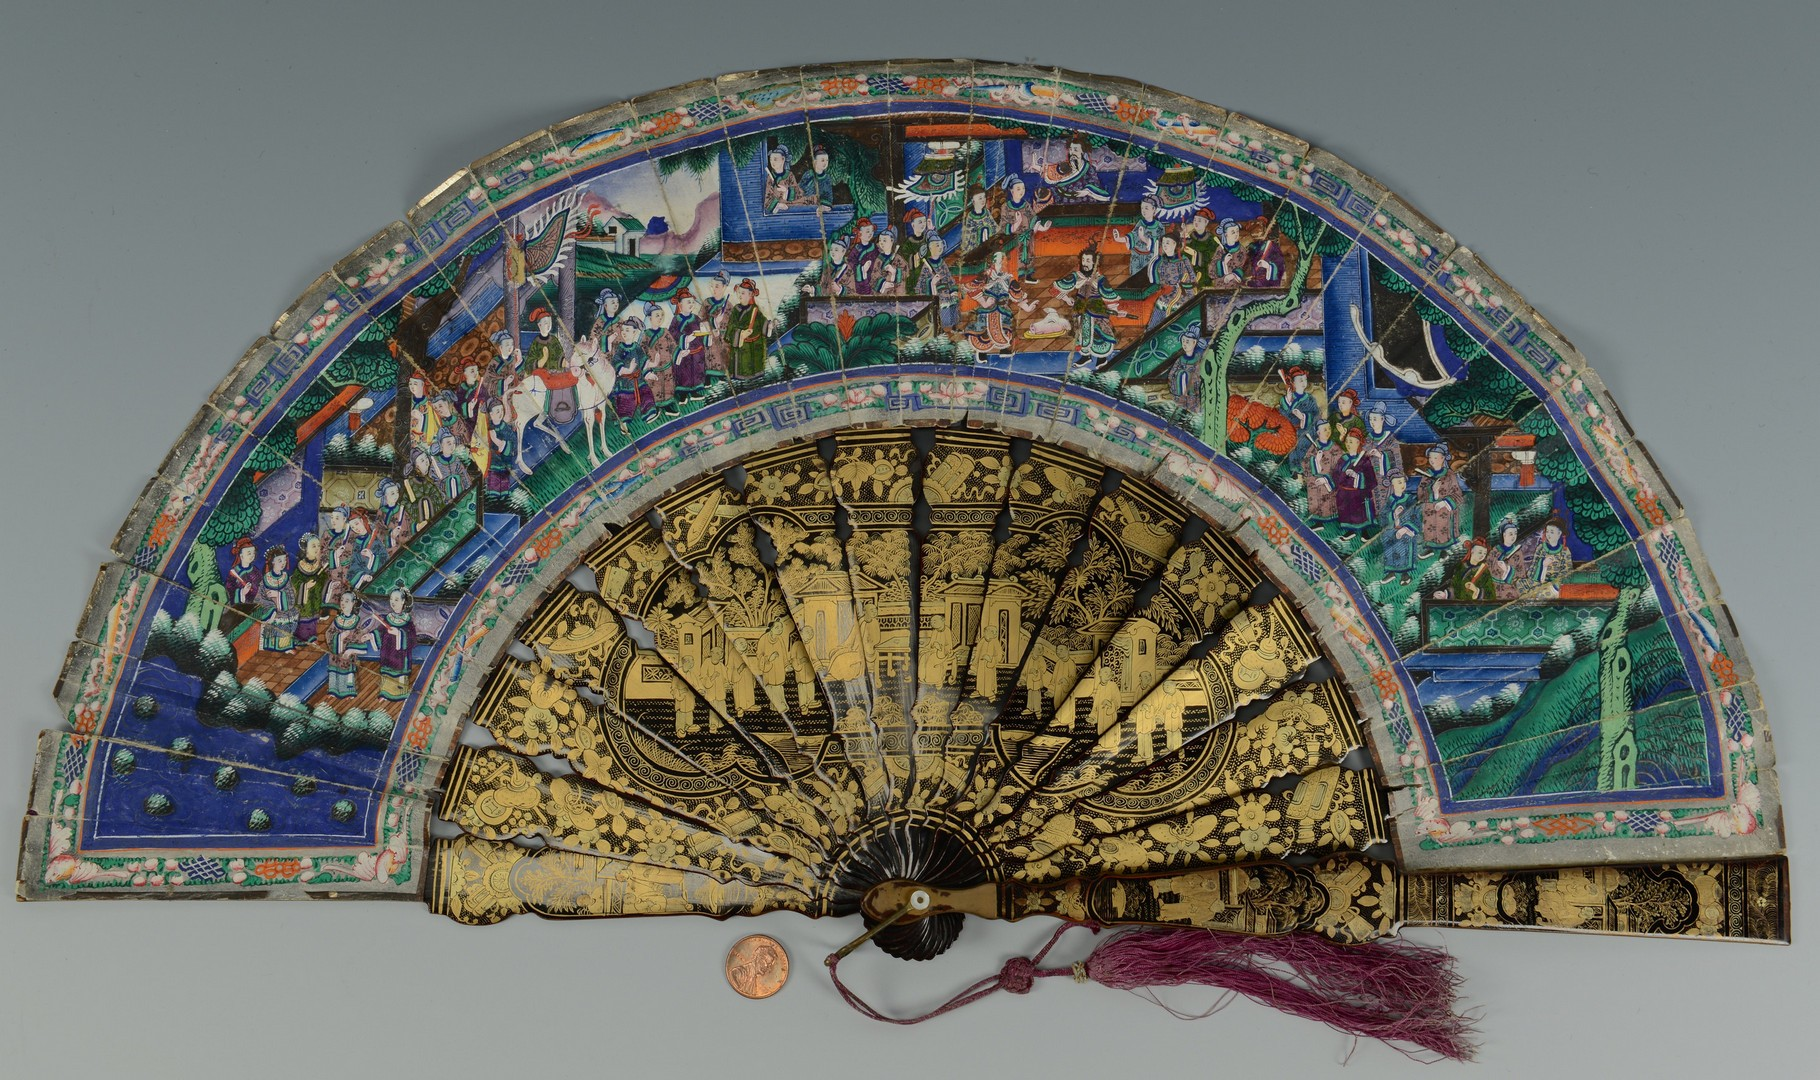 Lot 3383143: Chinese 1000 Face Fan